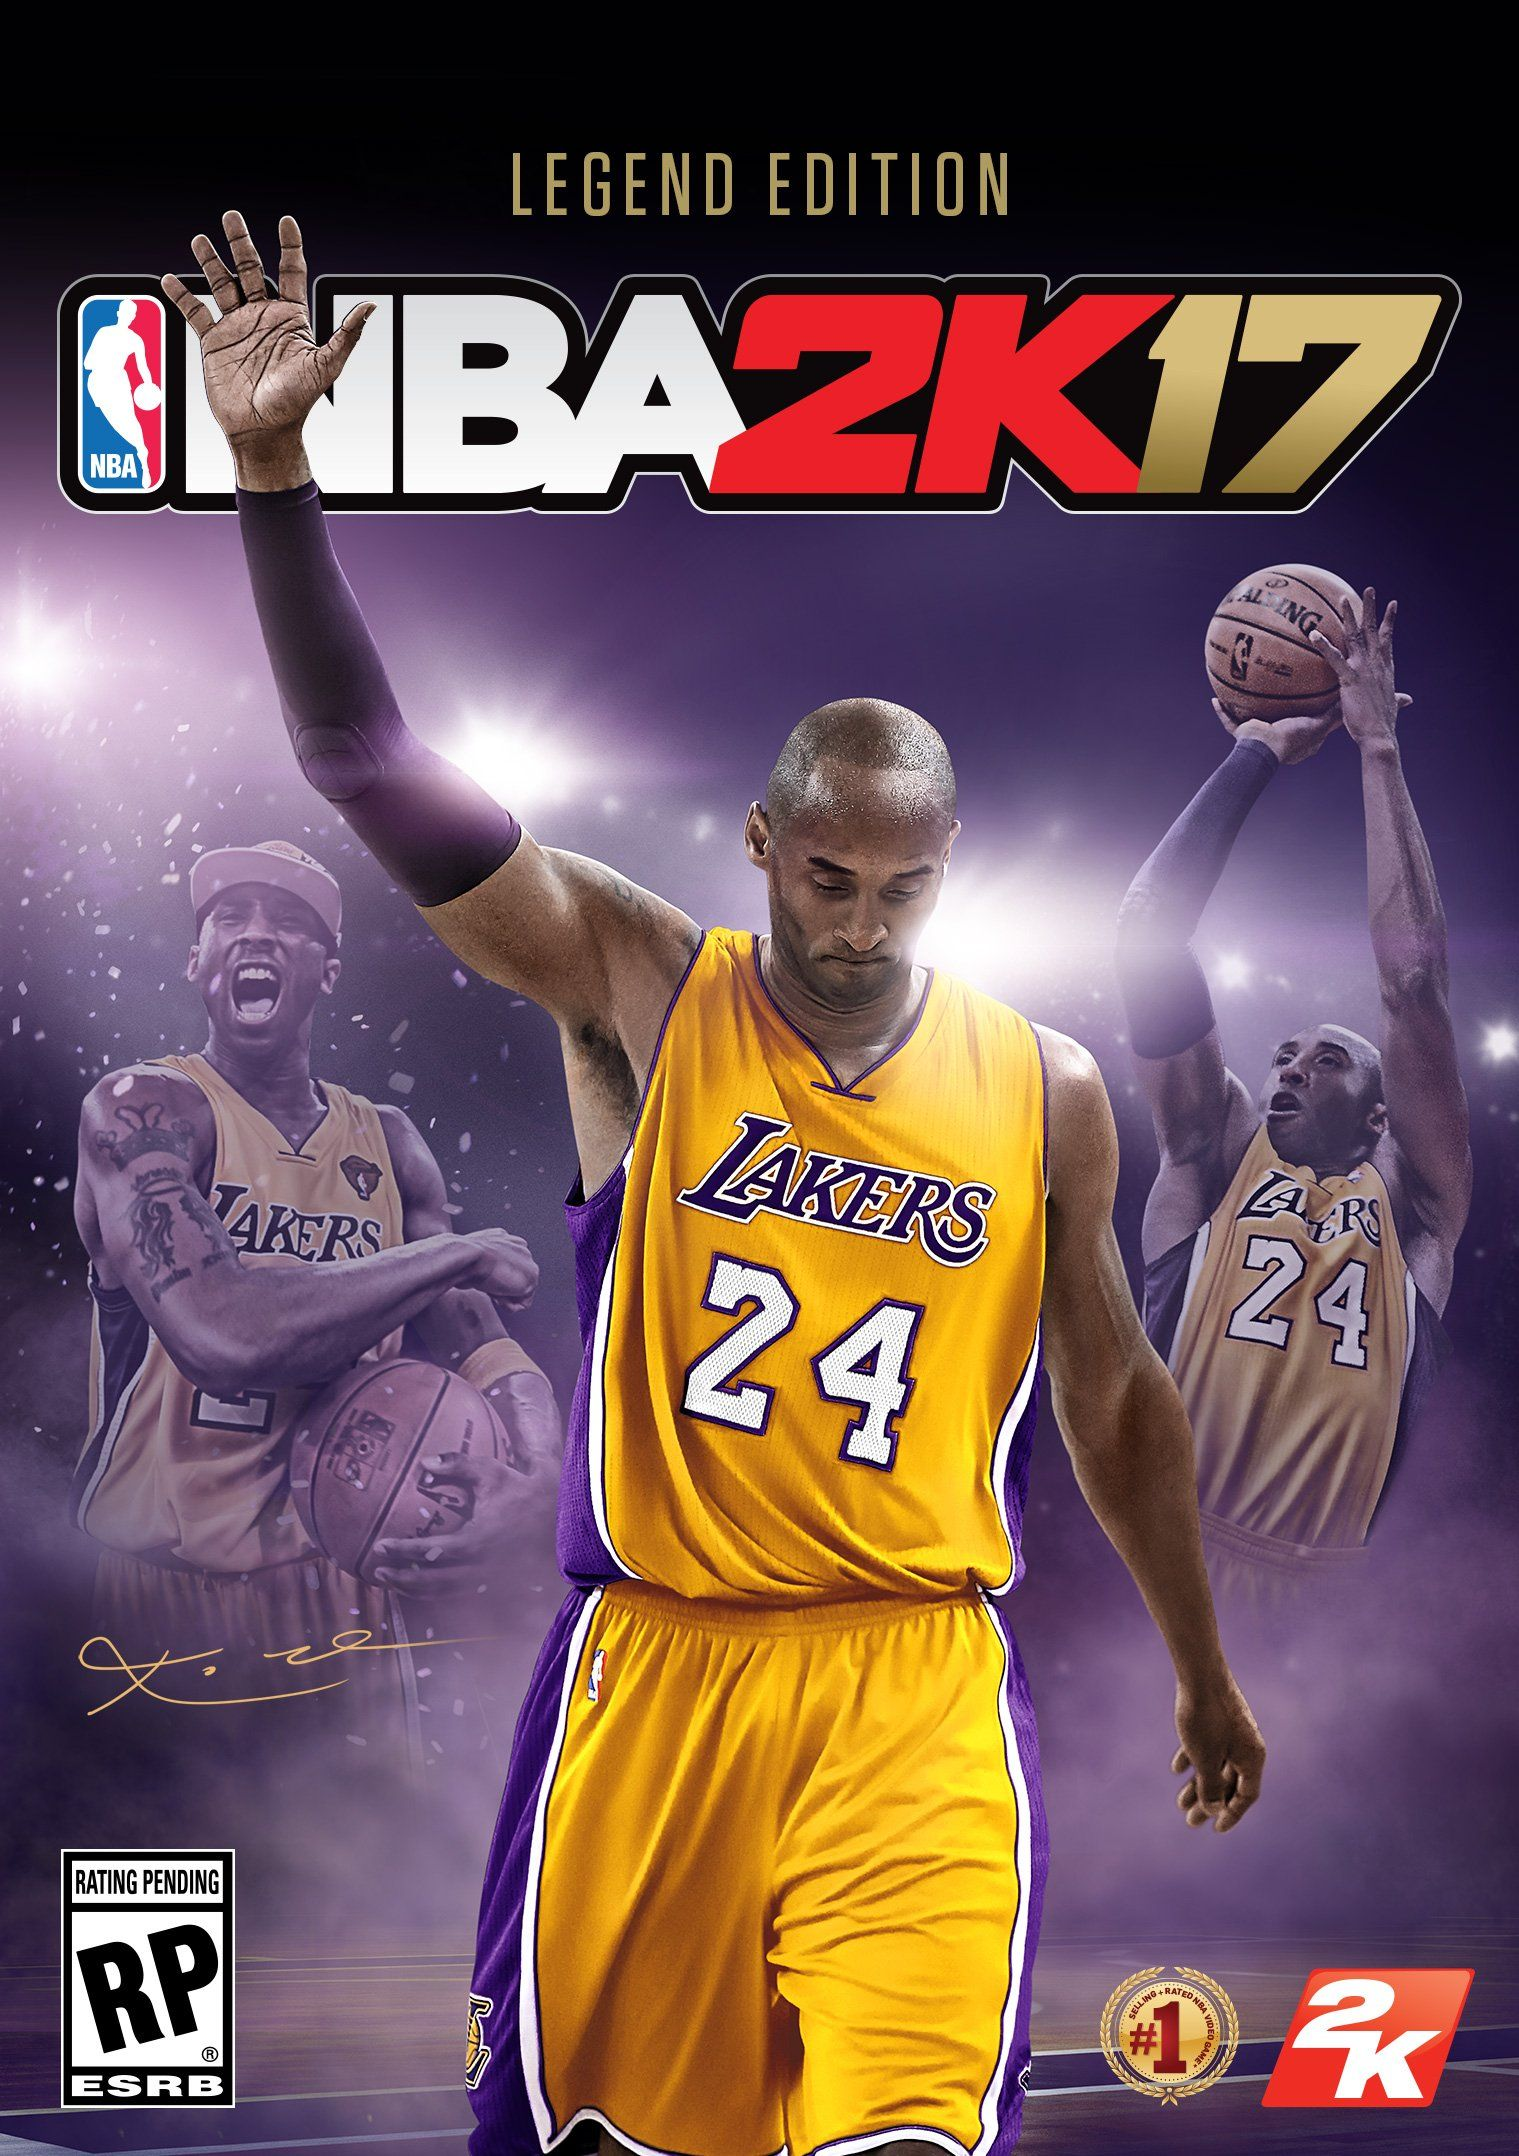 Kobe Bryant Gets NBA 2K17 Legend Edition Cover